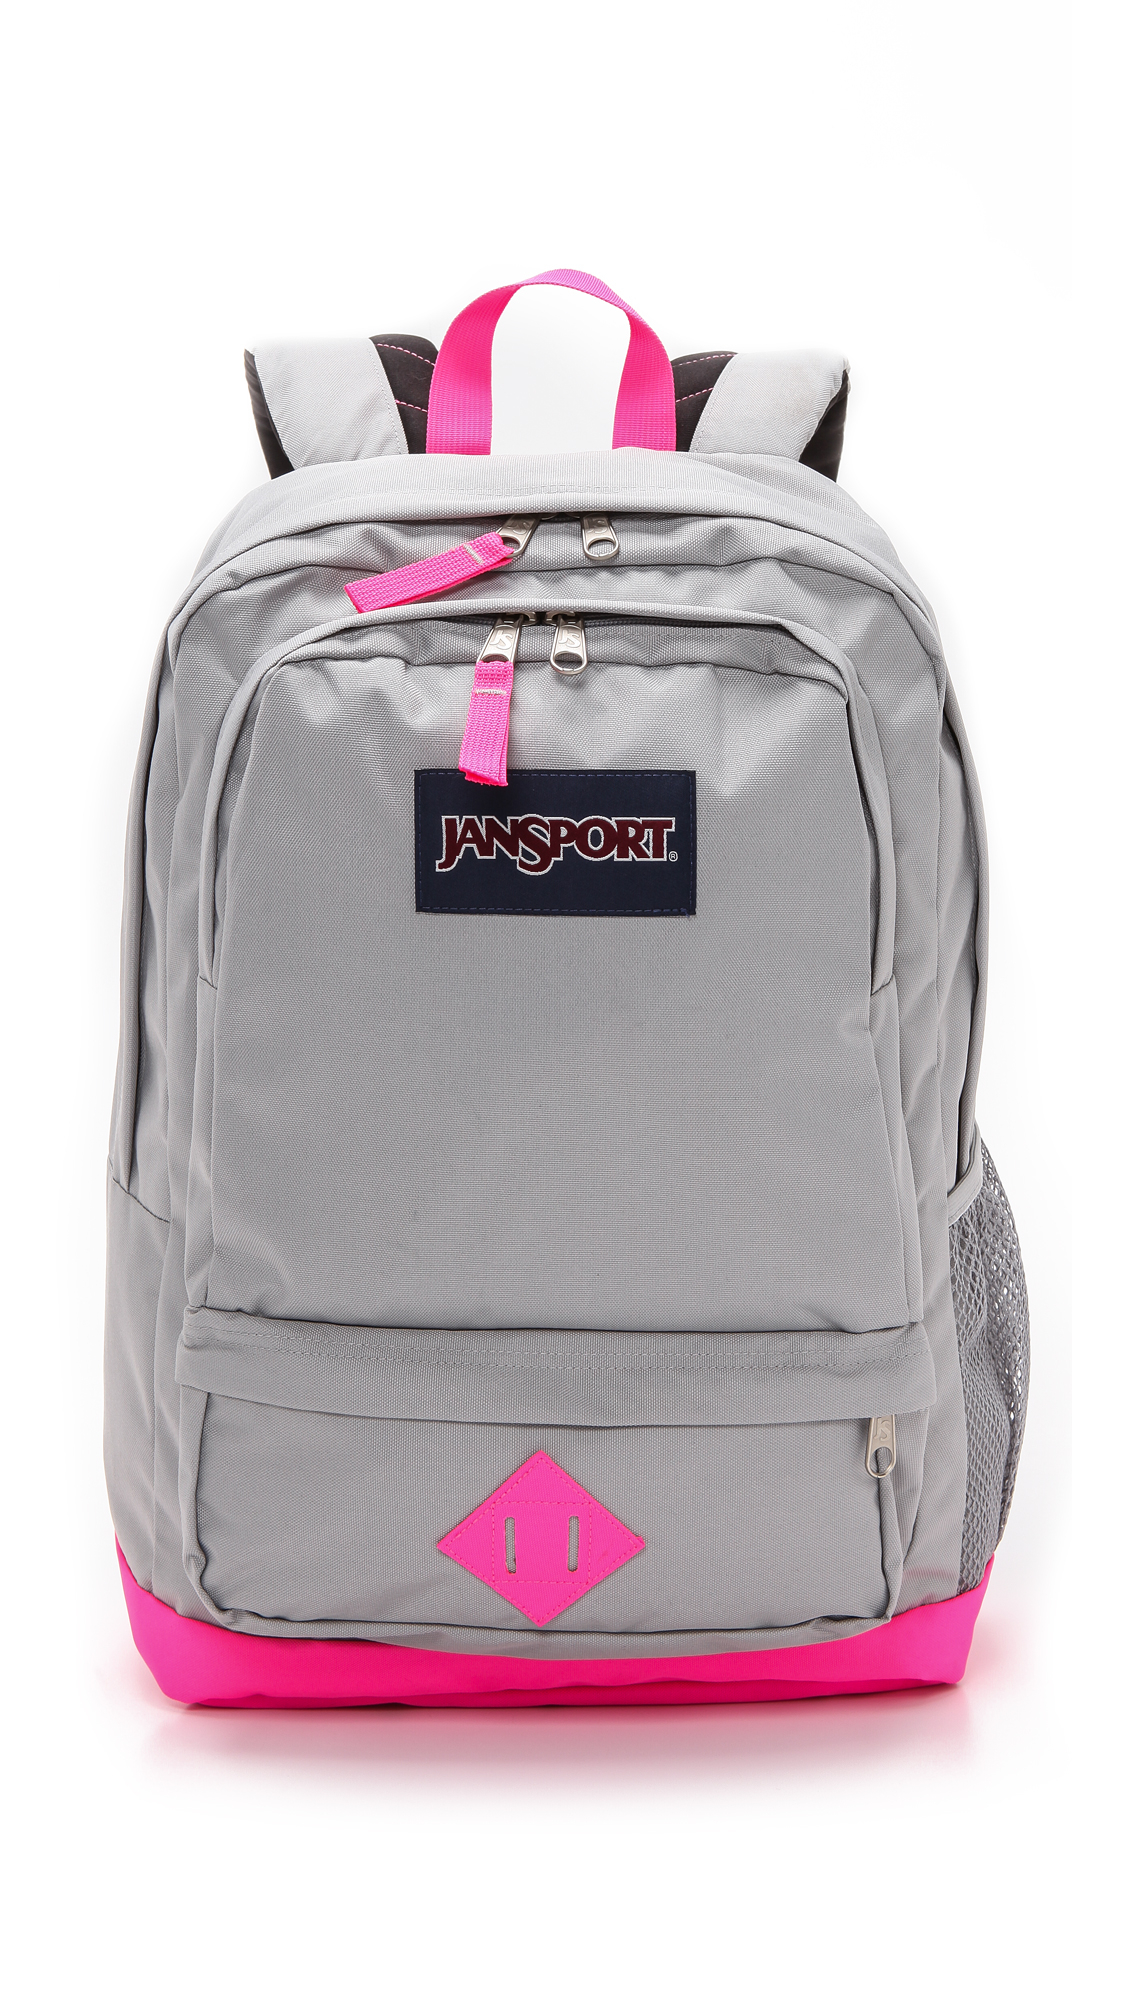 Lyst - Jansport Classic All Purpose Backpack Fluorescent Pink in Pink